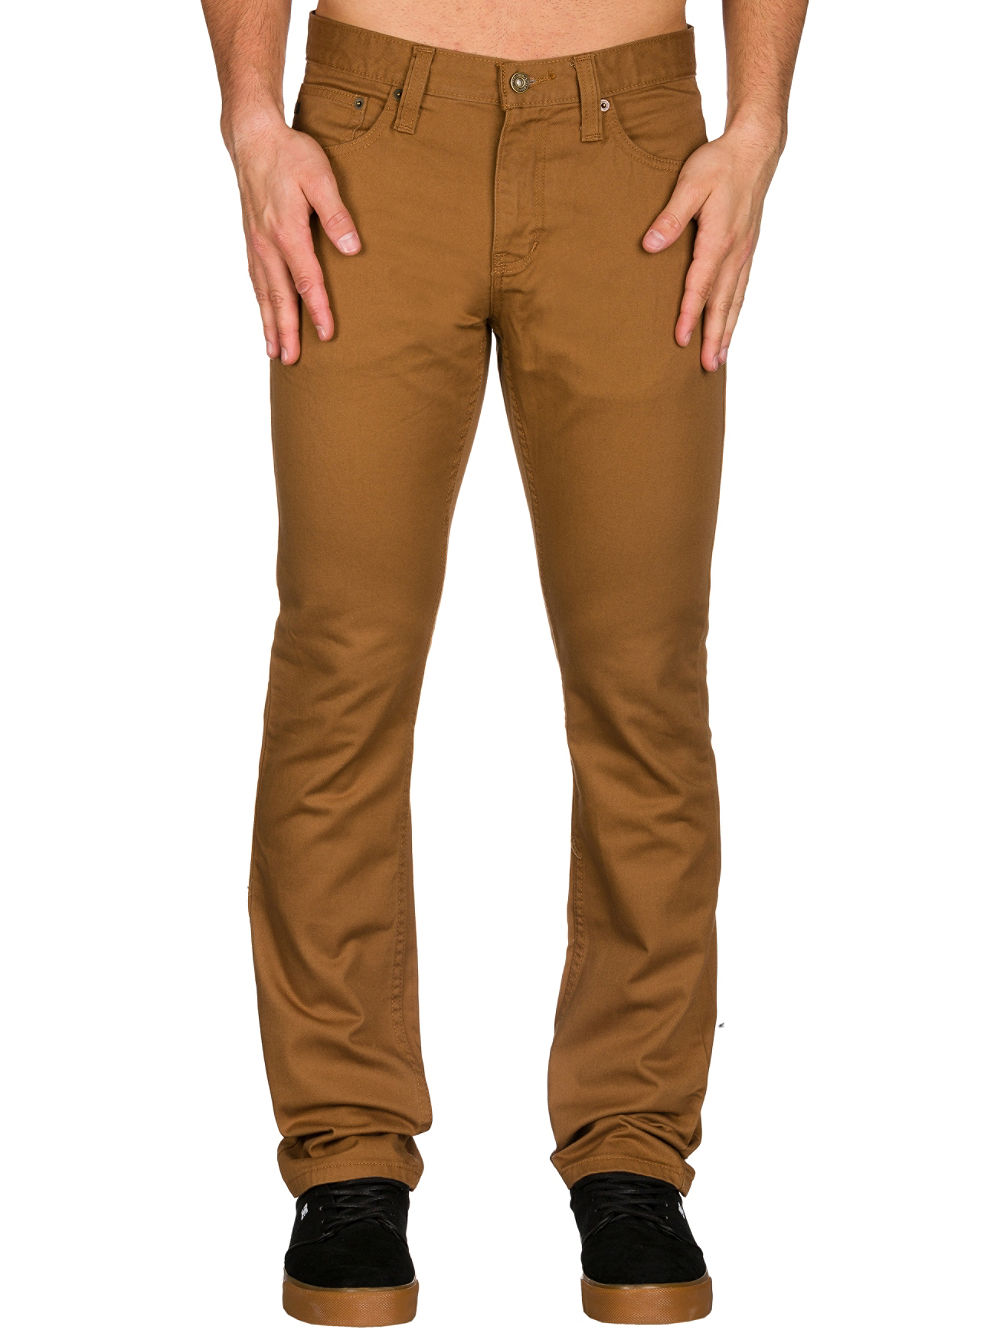 Messenger 5 Pocket Twill Pants